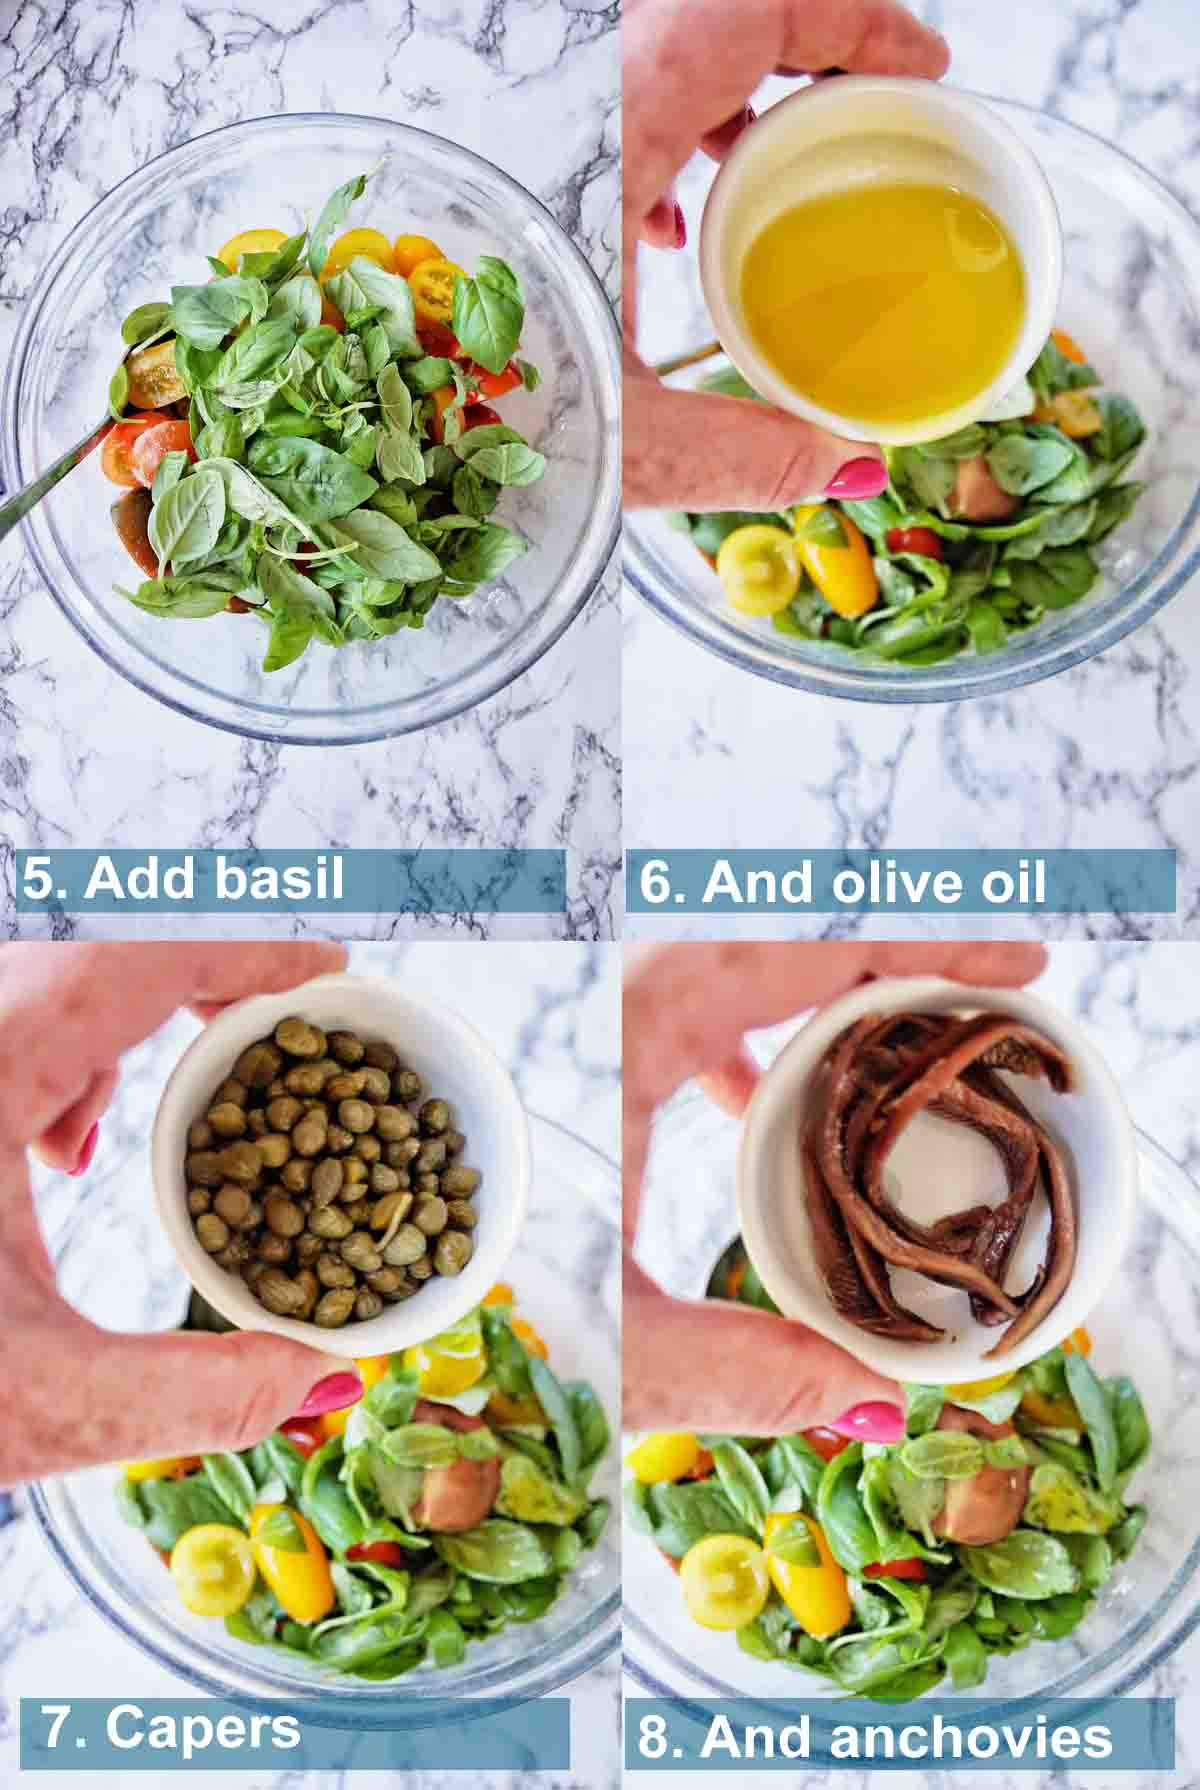 Method for Panzanella Salad 5 to 8 with text labels